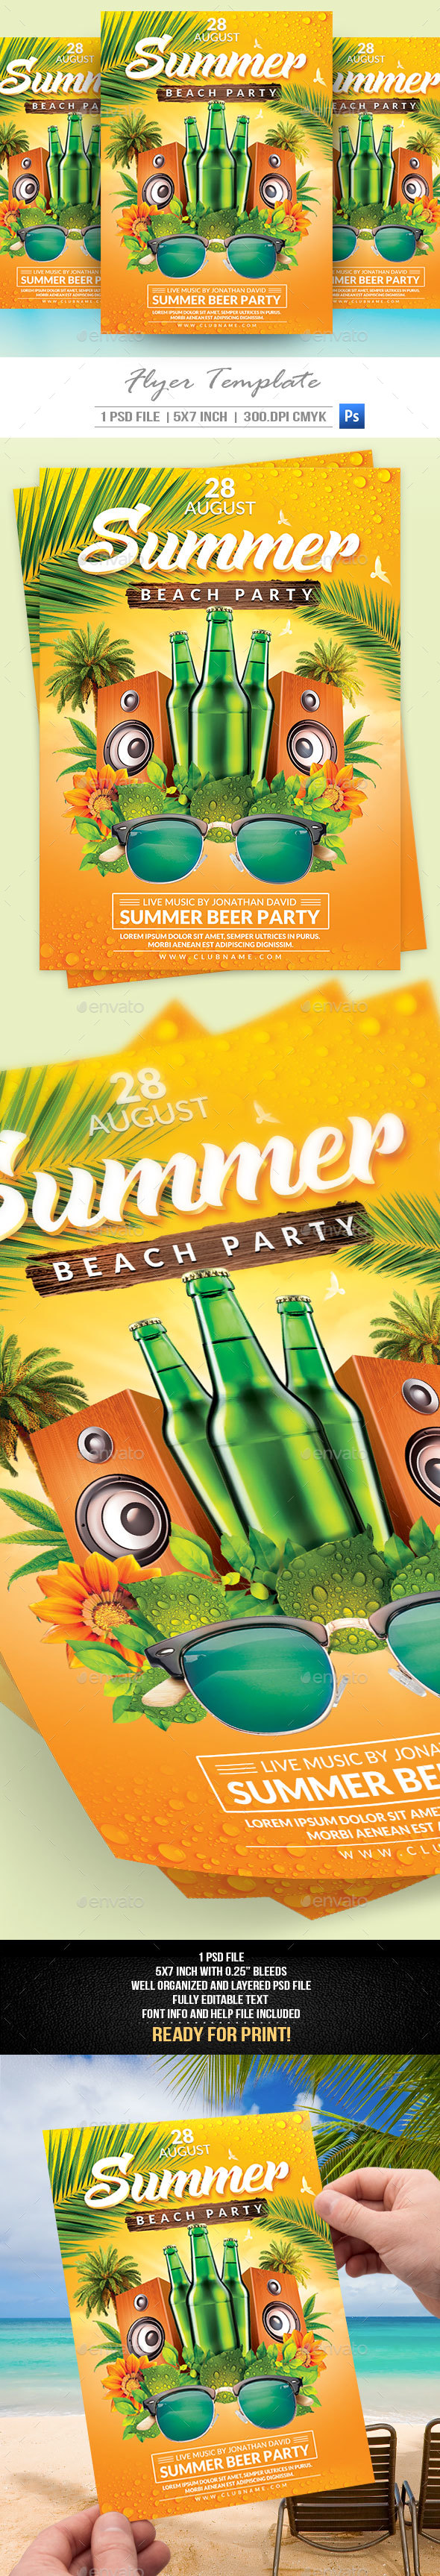 Summer Party Flyer Template V2 - Clubs & Parties Events